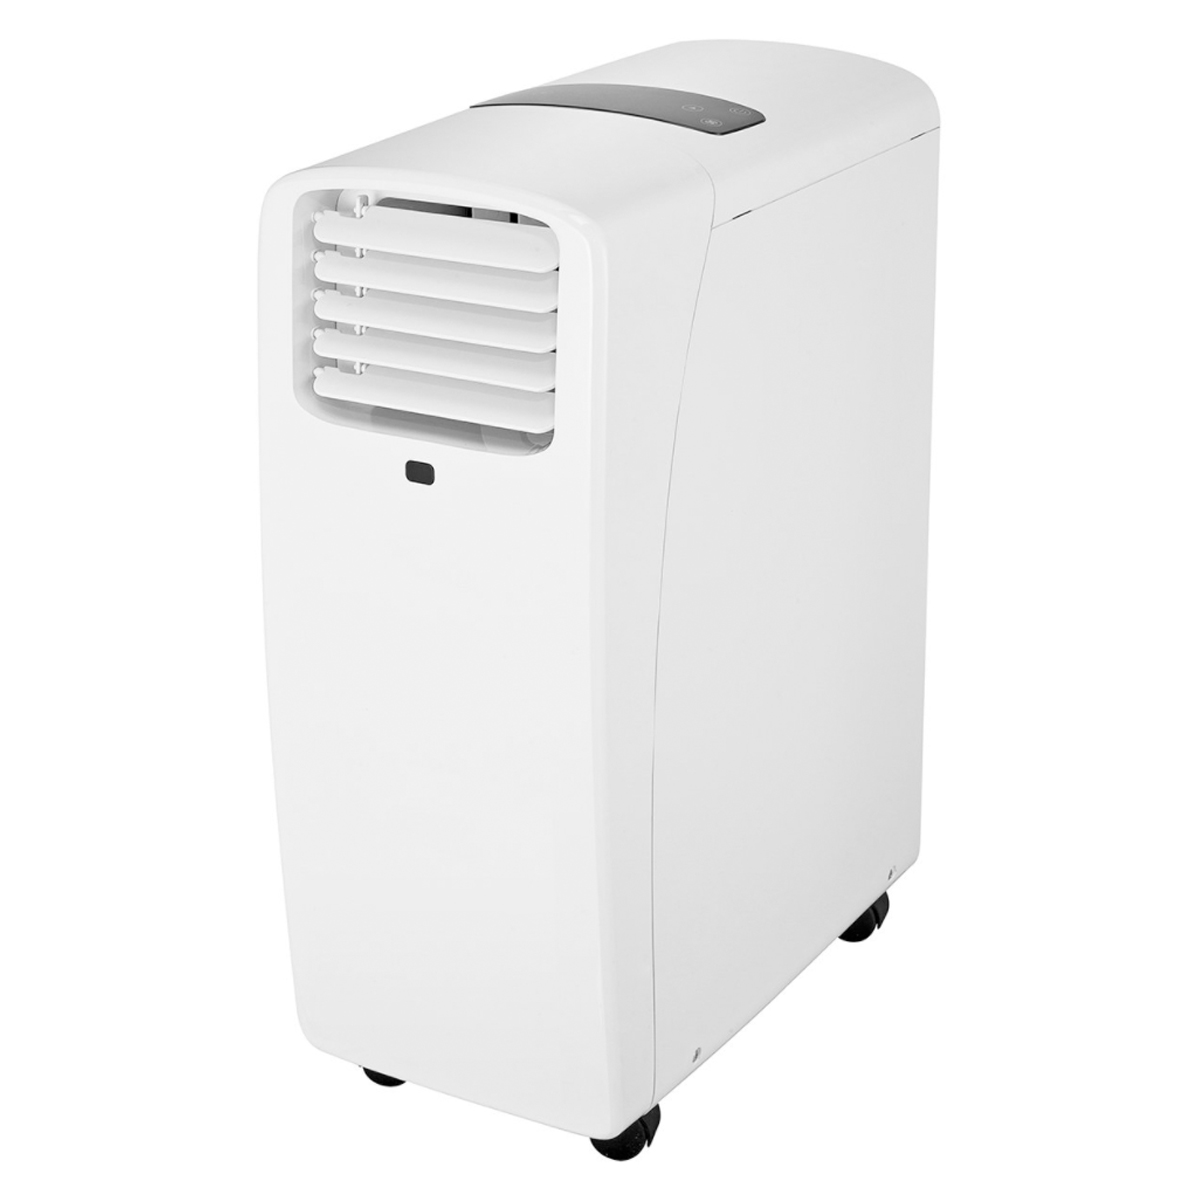 TCL TCLPAC10 3kW Portable Air Conditioner with Dehumidifier 138288